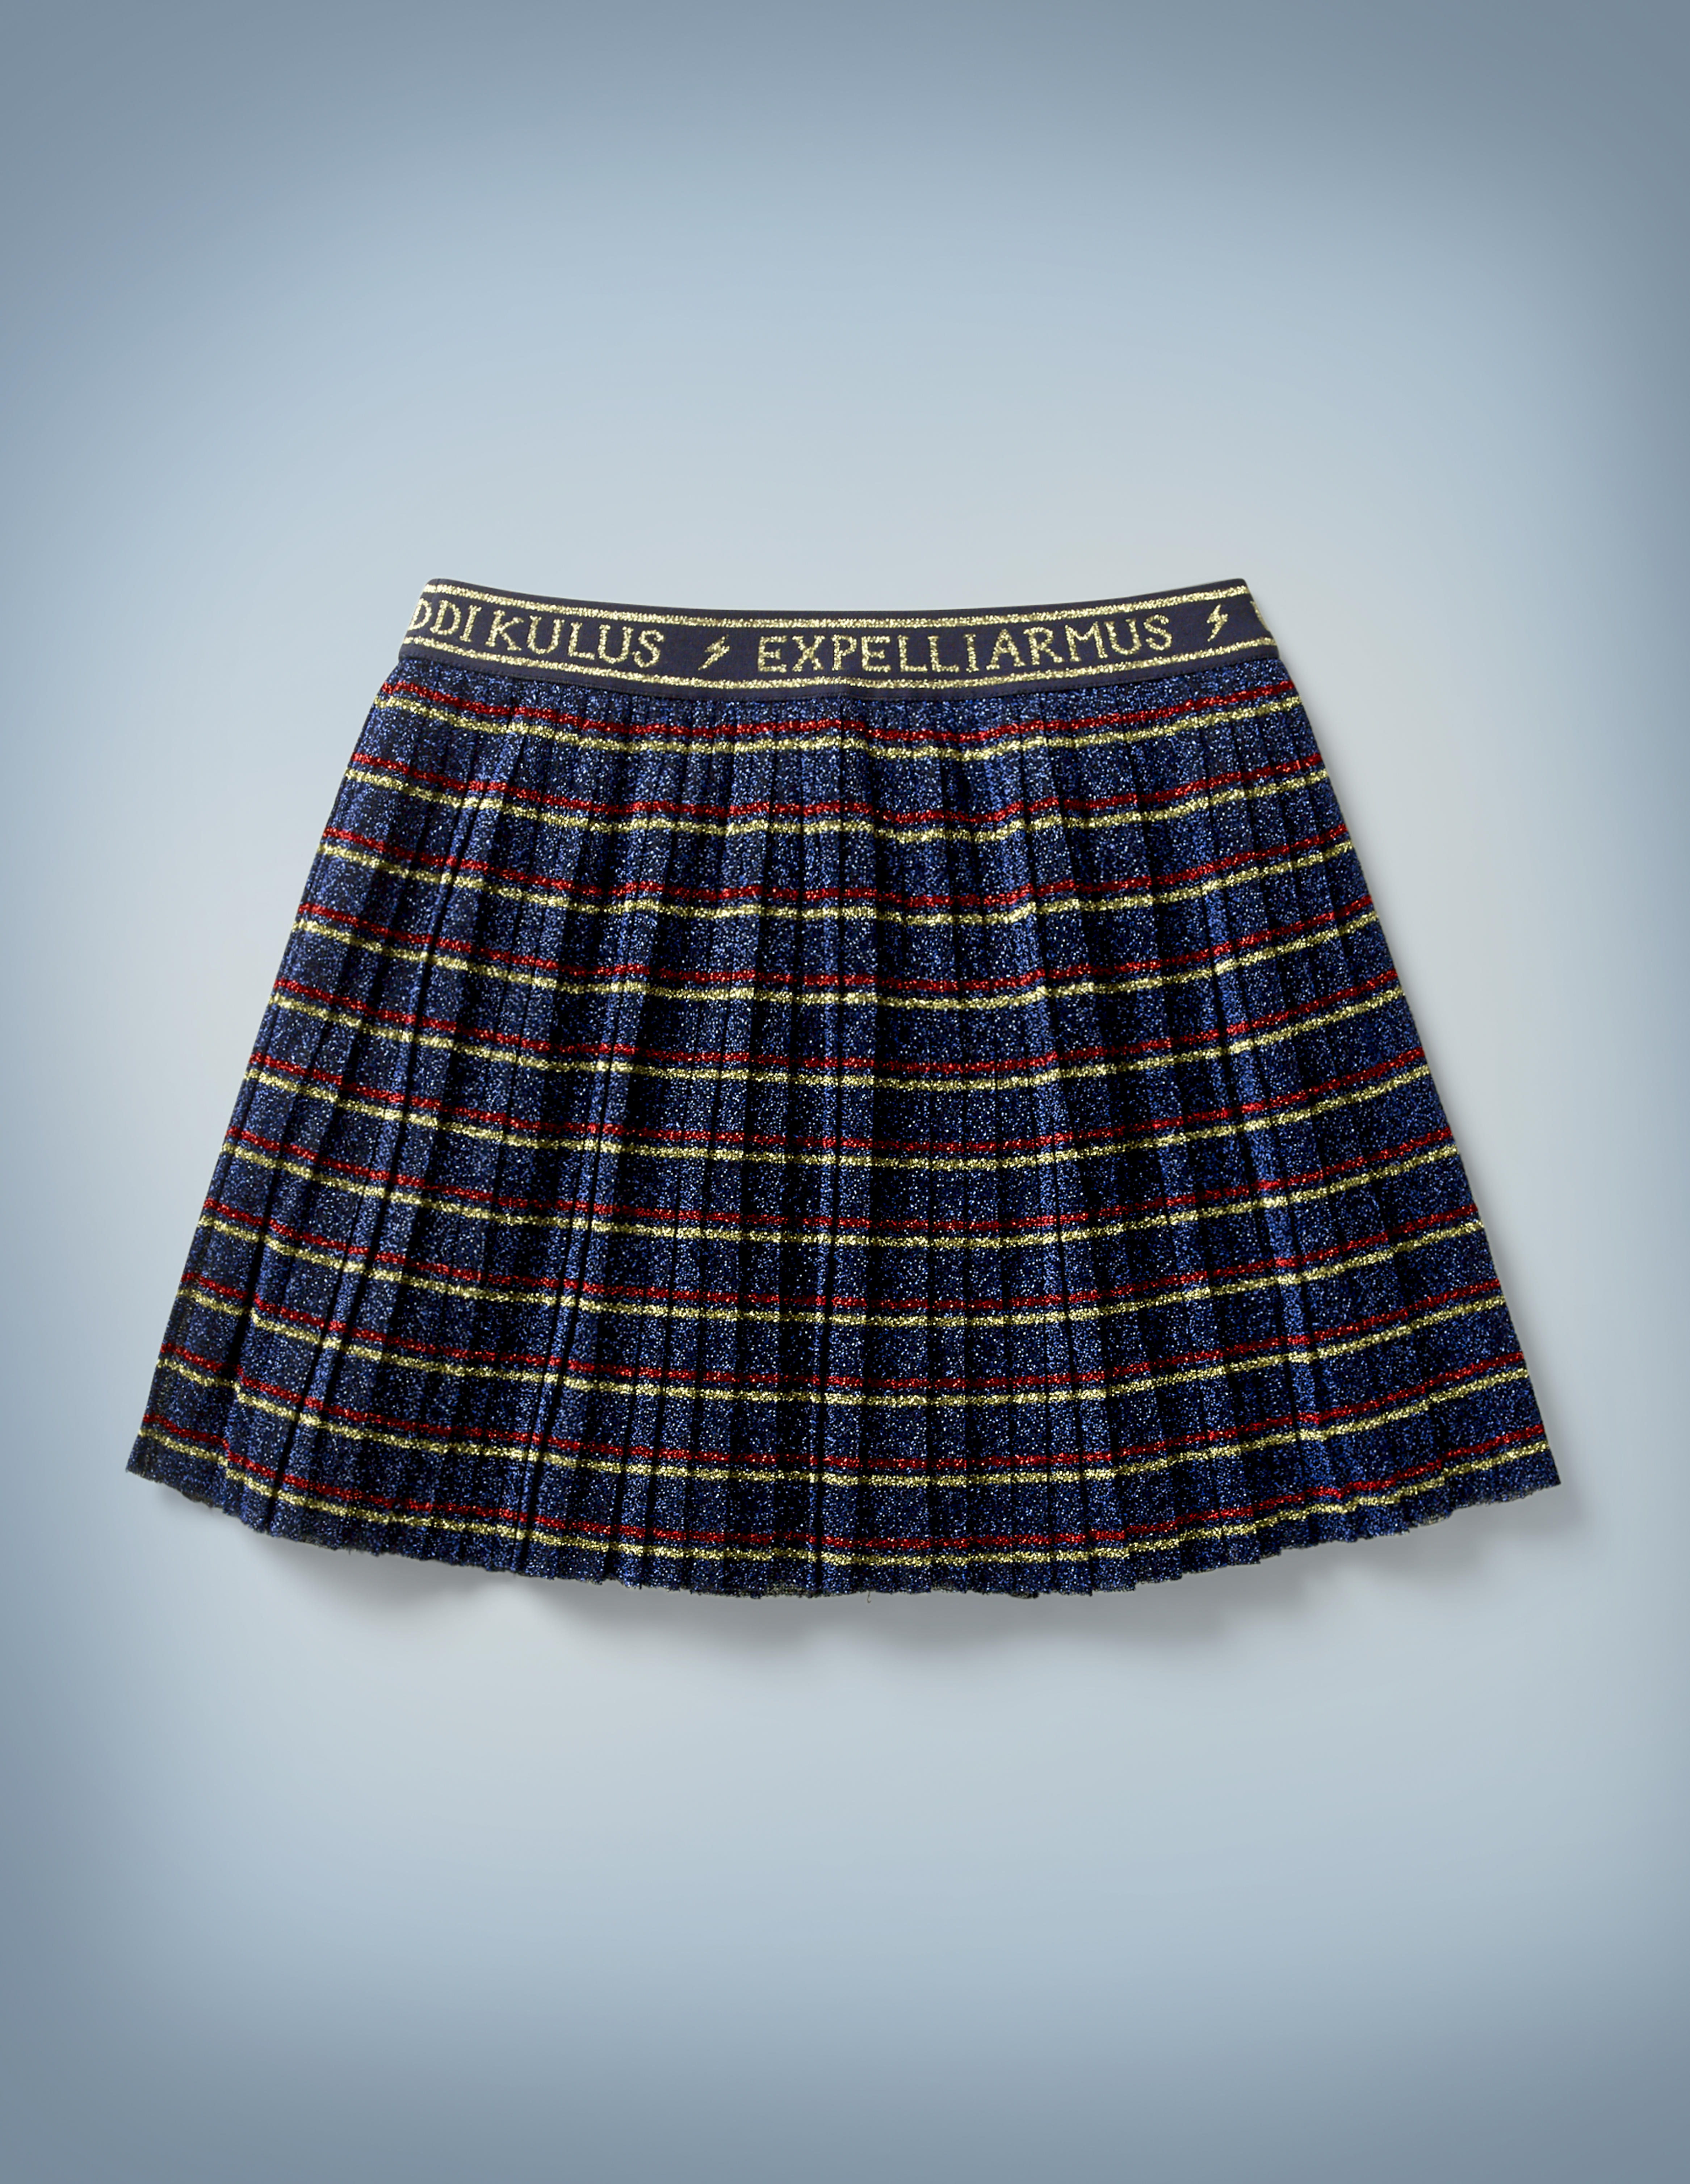 """The Mini Boden Spell Skirt is navy blue with red-and-gold stripes and a waistband that features spell incantations such as """"Riddikulus"""" and """"Expelliarmus"""" written in gold and separated by lightning bolts. It retails at £30."""